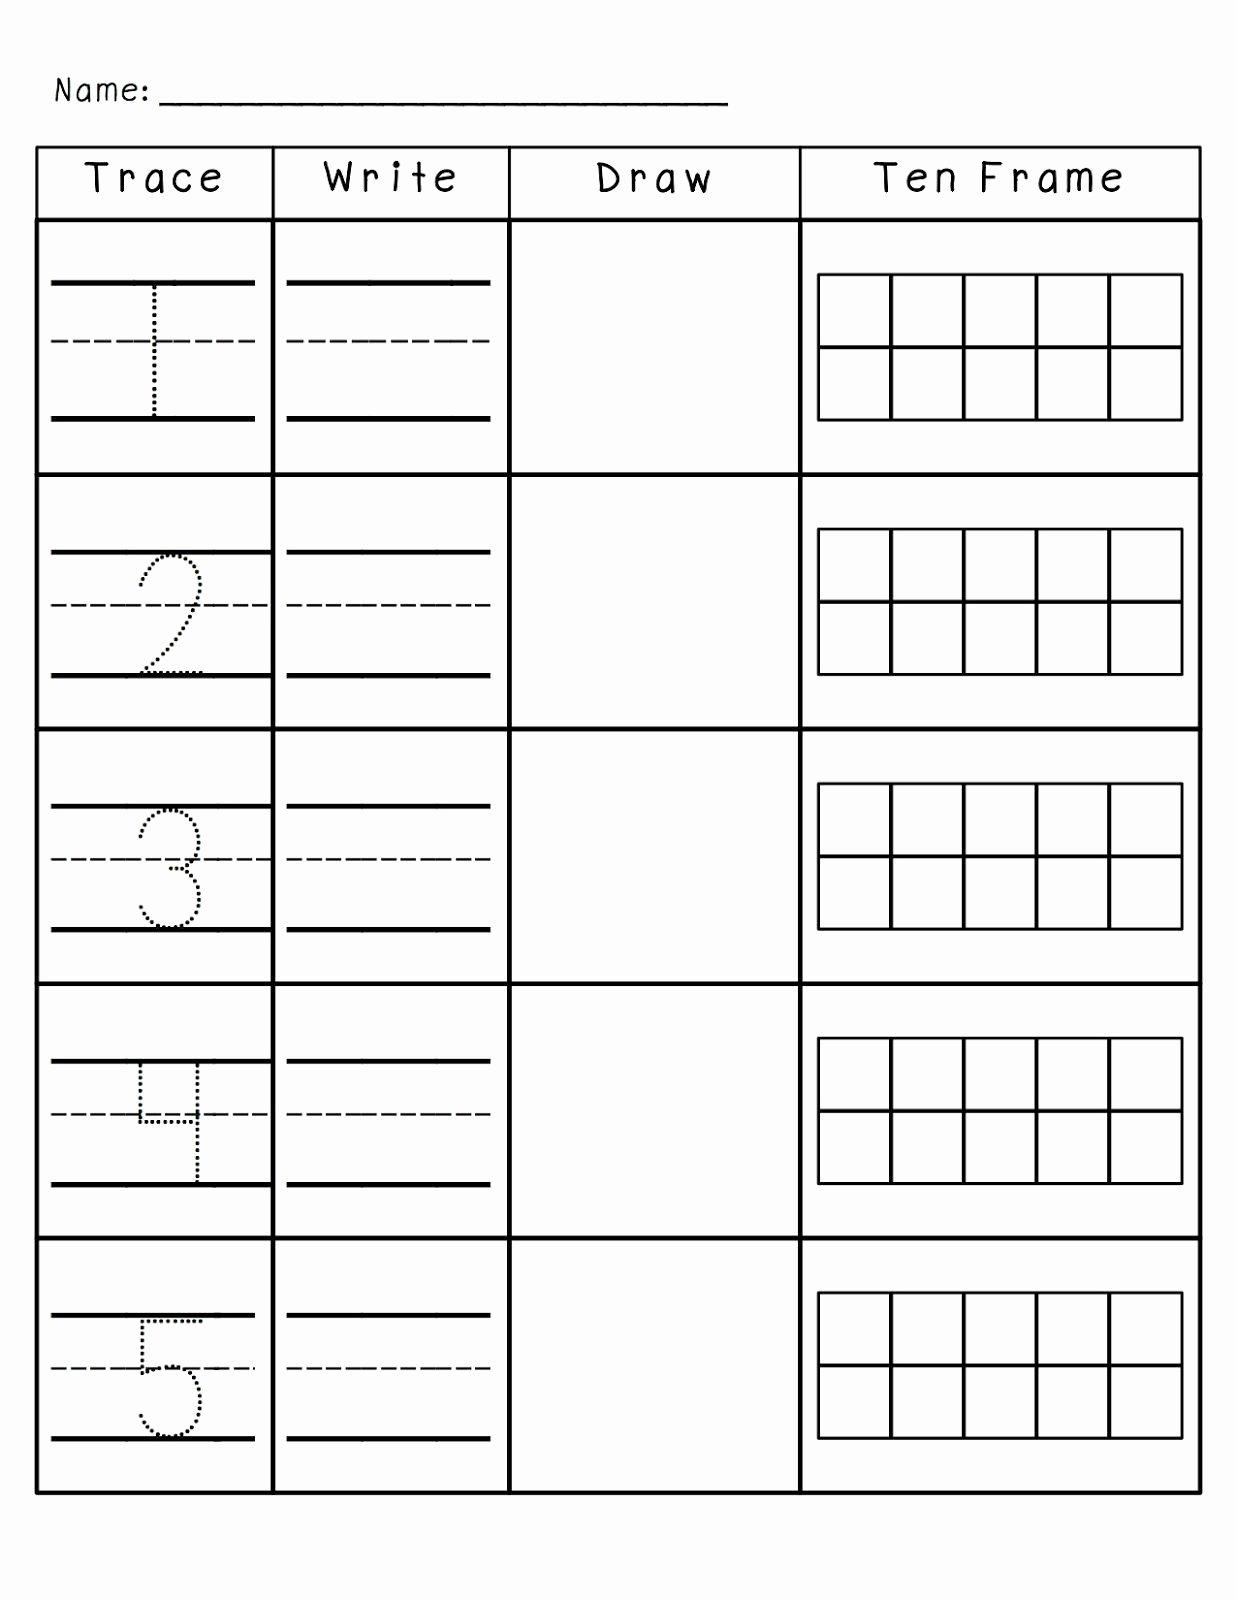 Double Ten Frame Template Lovely Number Practice 1 10 Trace Write Draw Fill In Ten